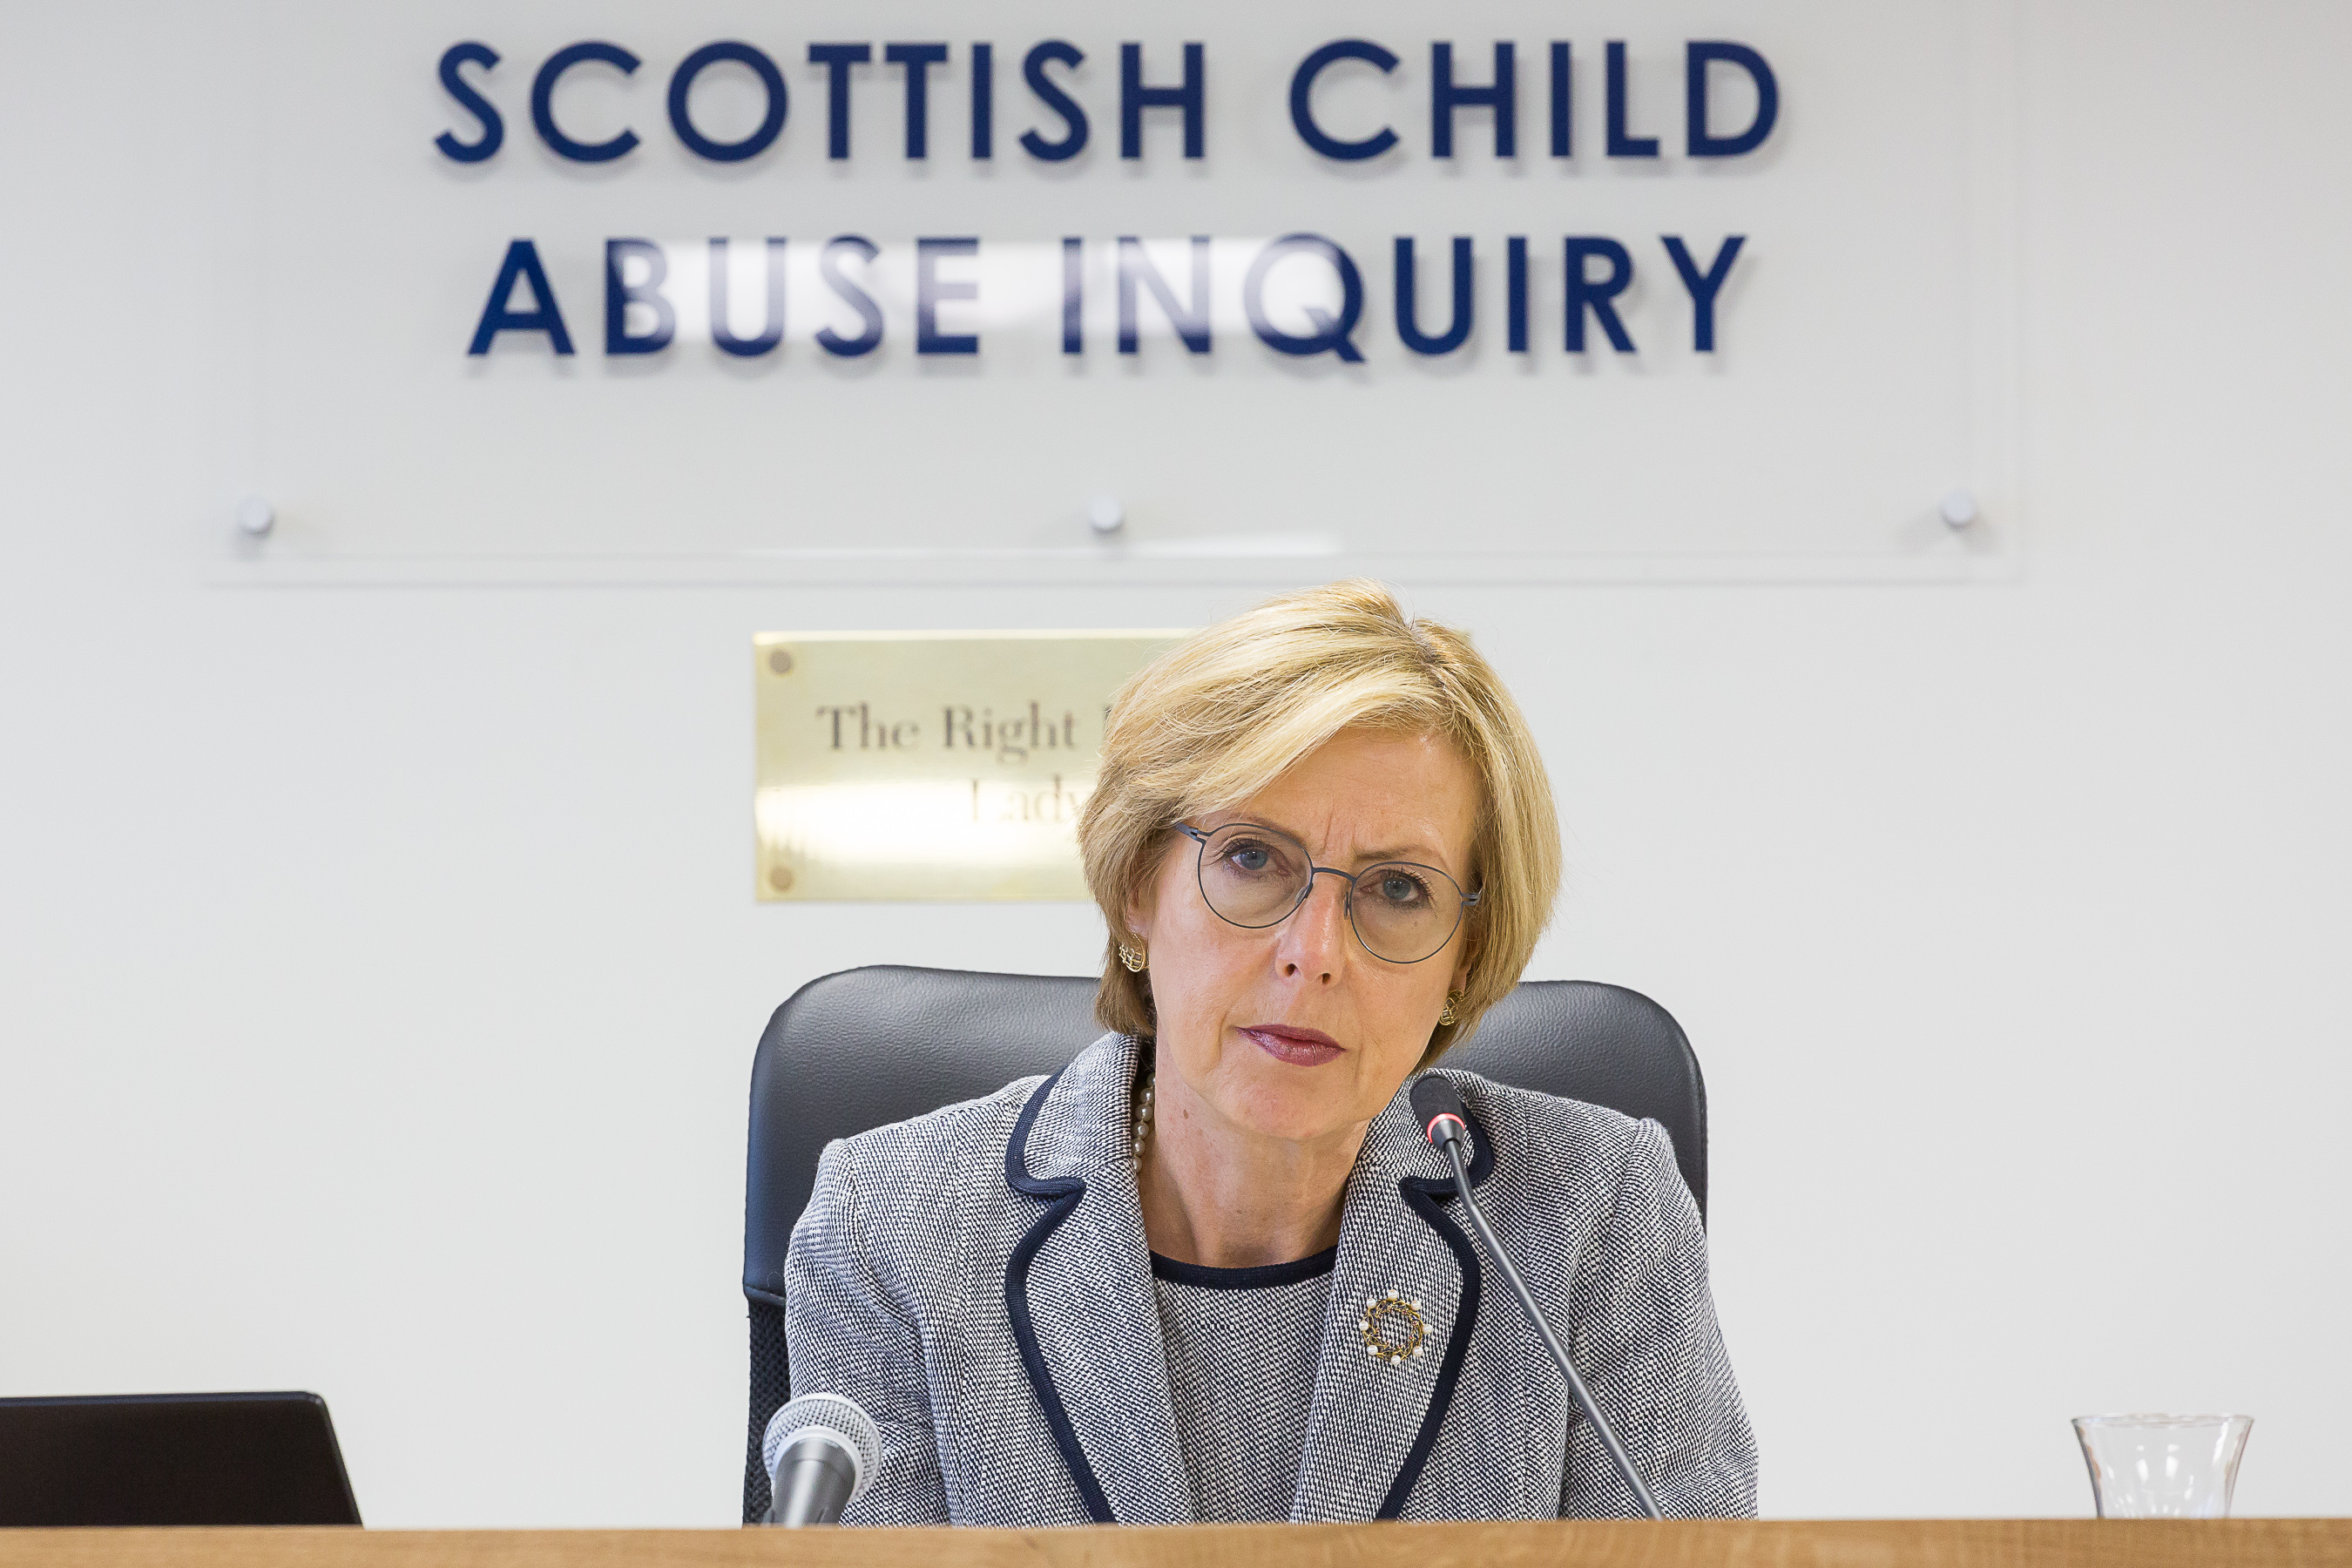 Lady Smith leading the Scottish Child Abuse Inquiry (Nick Mailer Photography)